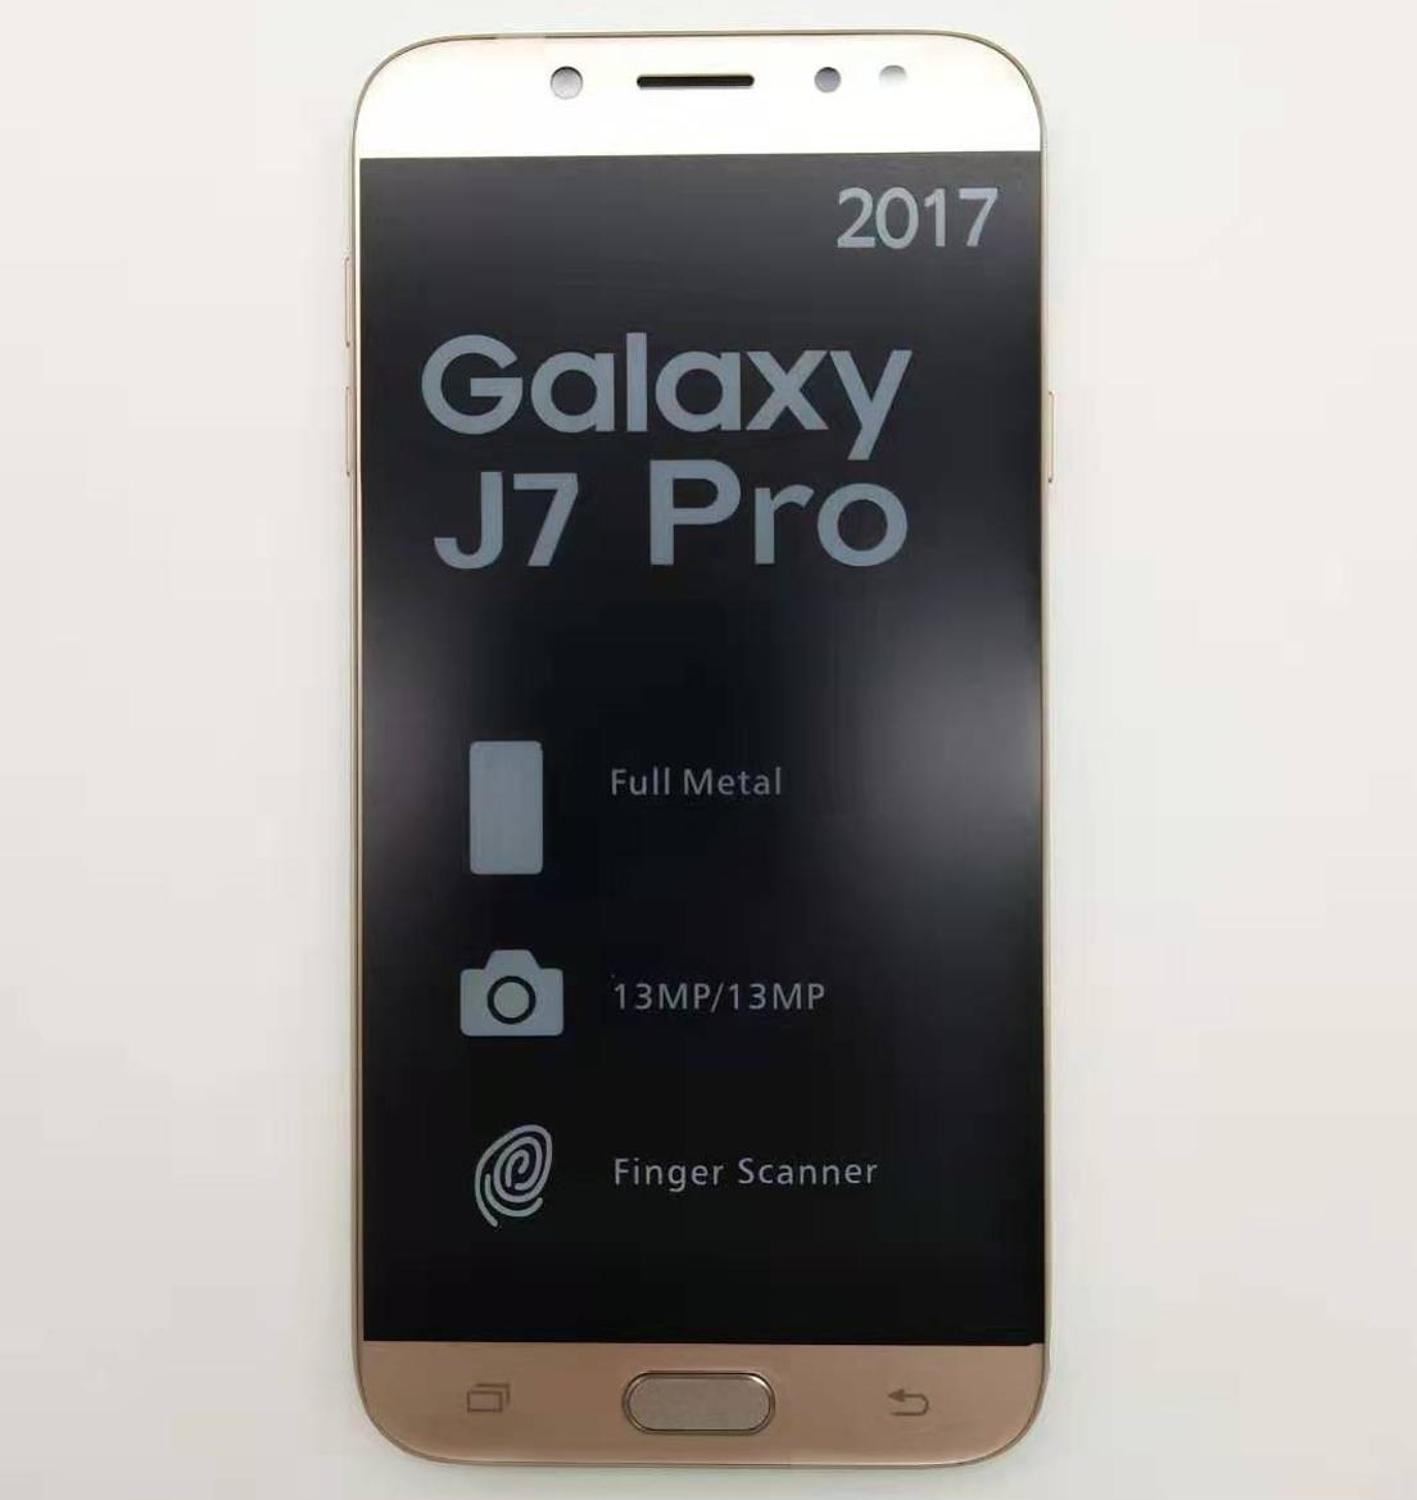 Original Samsung Galaxy J7 Pro Unlocked GSM 4G LTE Android Mobile Phone Octa Core Dual Sim 5.5